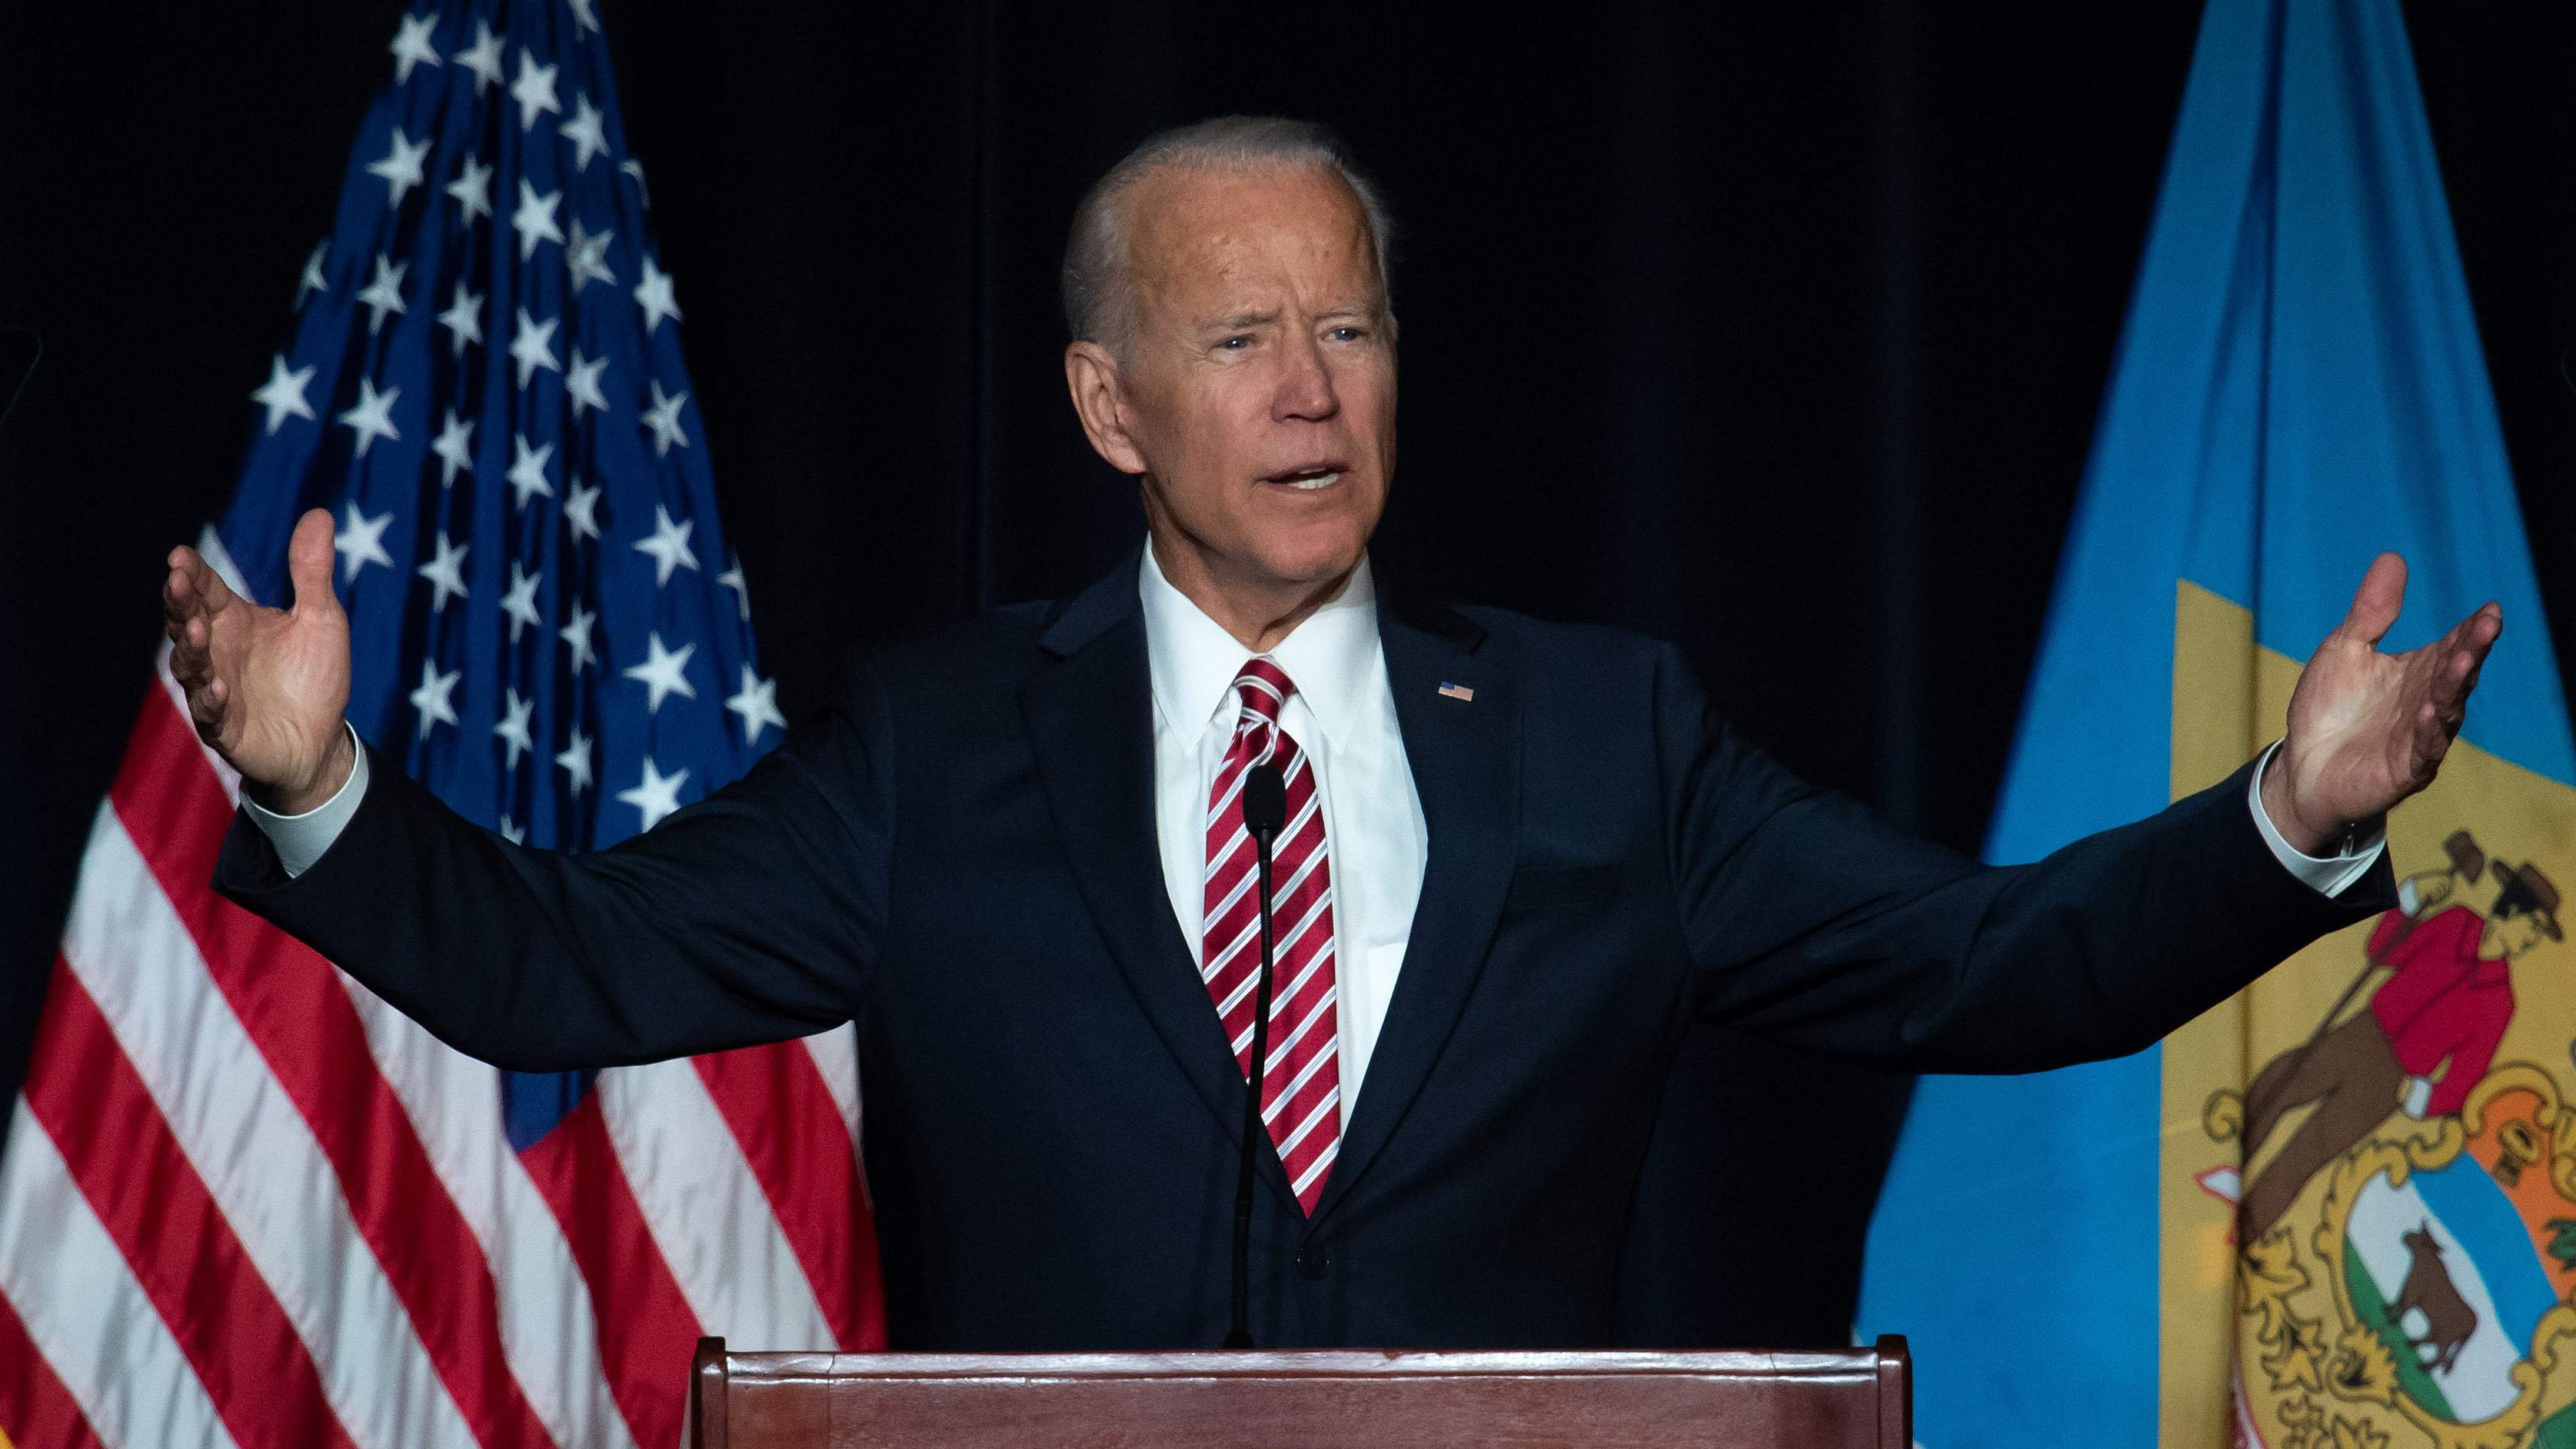 Former Vice President Joe Biden speaks during the First State Democratic Dinner in Dover, Delaware, on March 16, 2019.